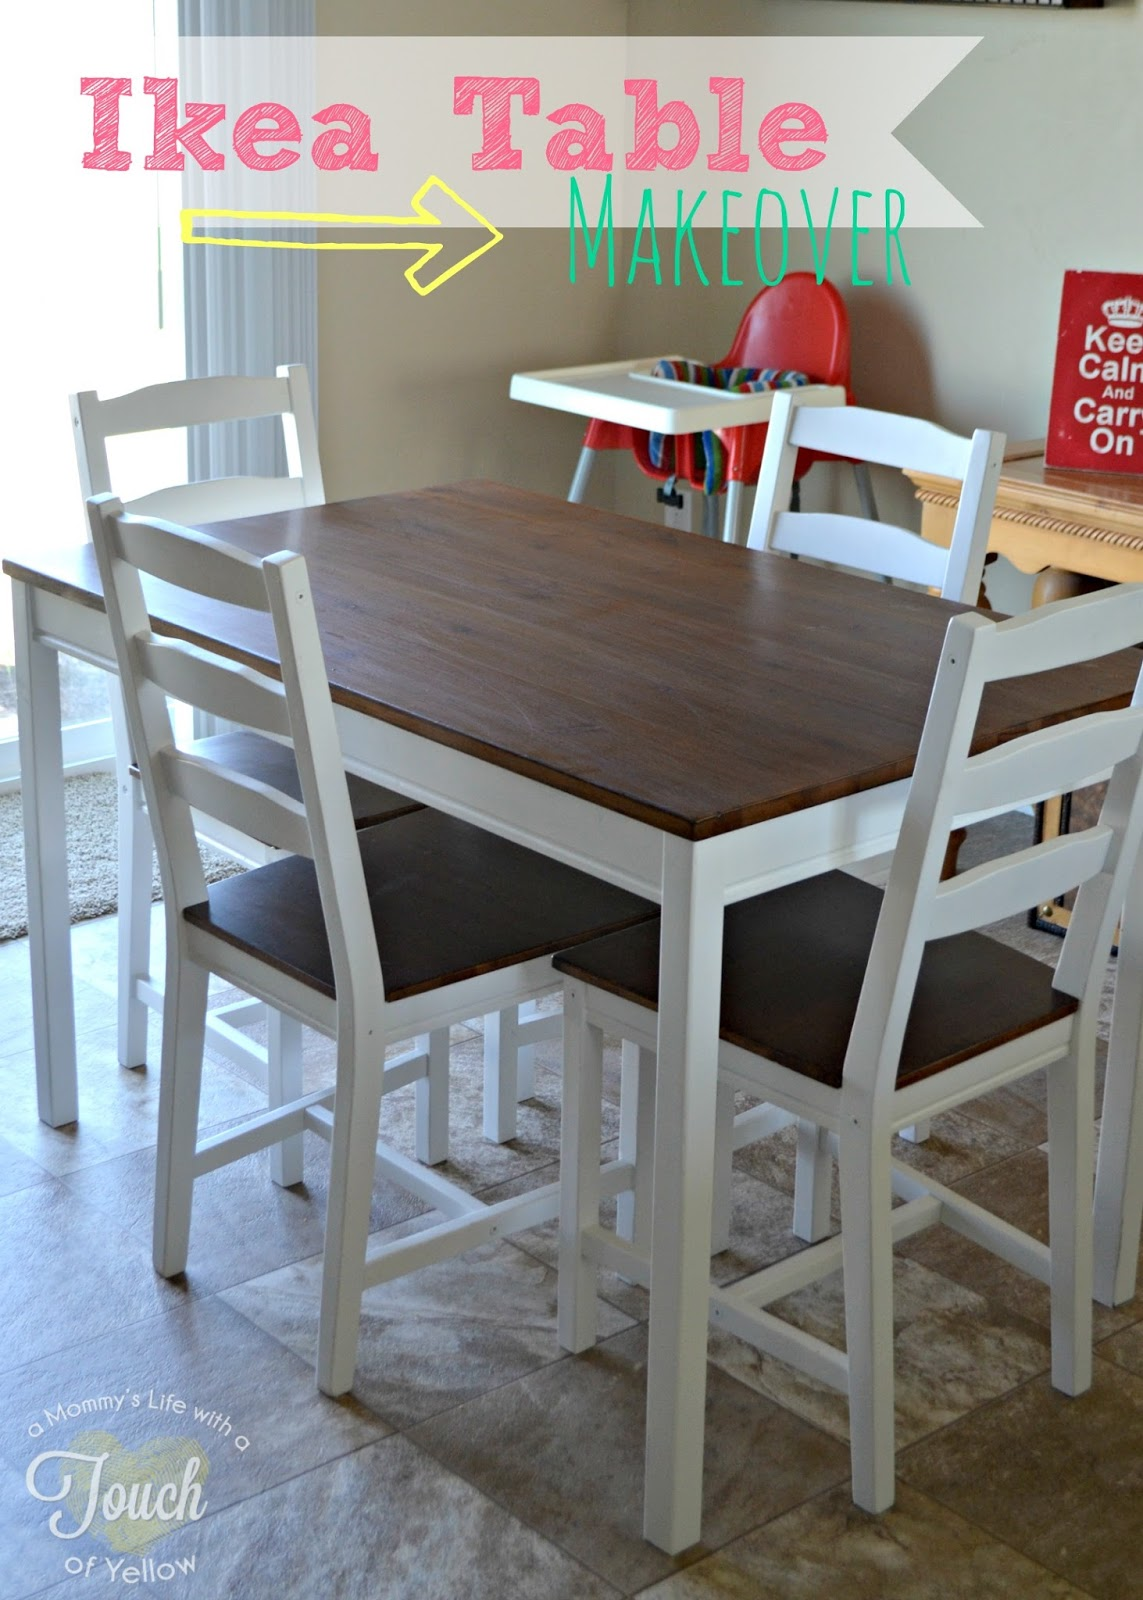 ikea kitchen table makeover tutorial refinishing kitchen table Ikea Kitchen Table Makeover Tutorial